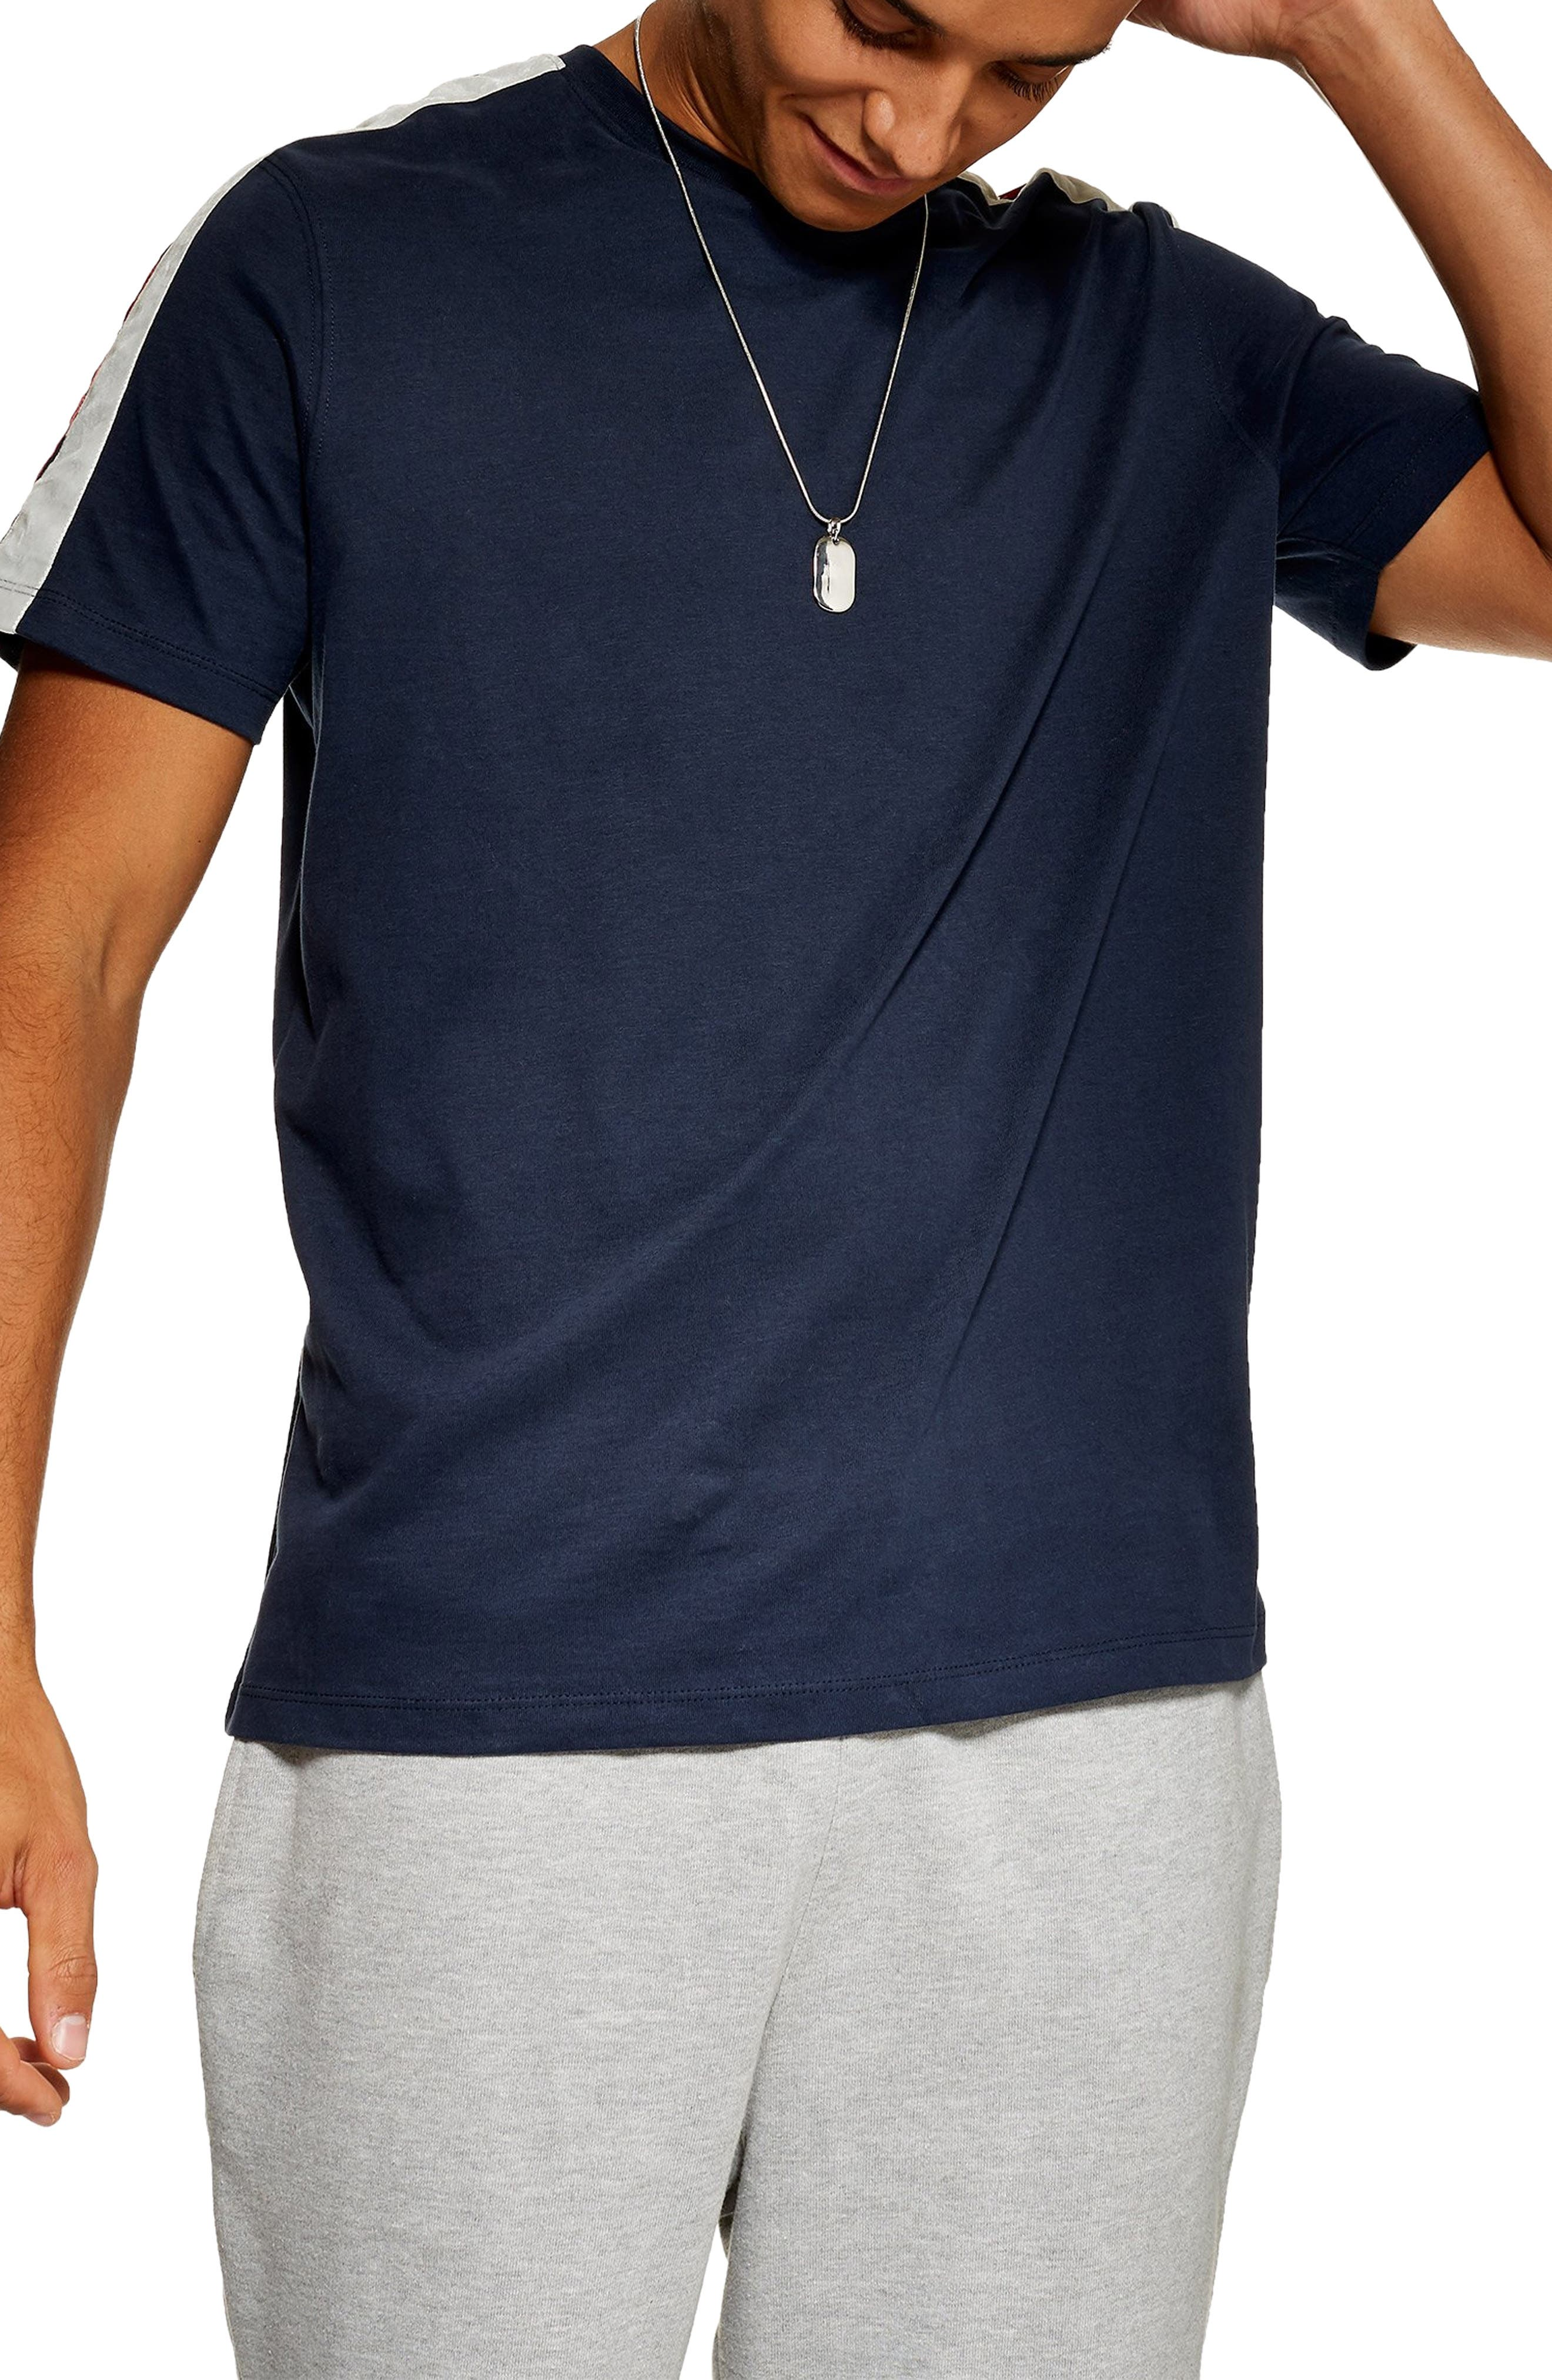 Velour Taped T-Shirt,                         Main,                         color, NAVY BLUE